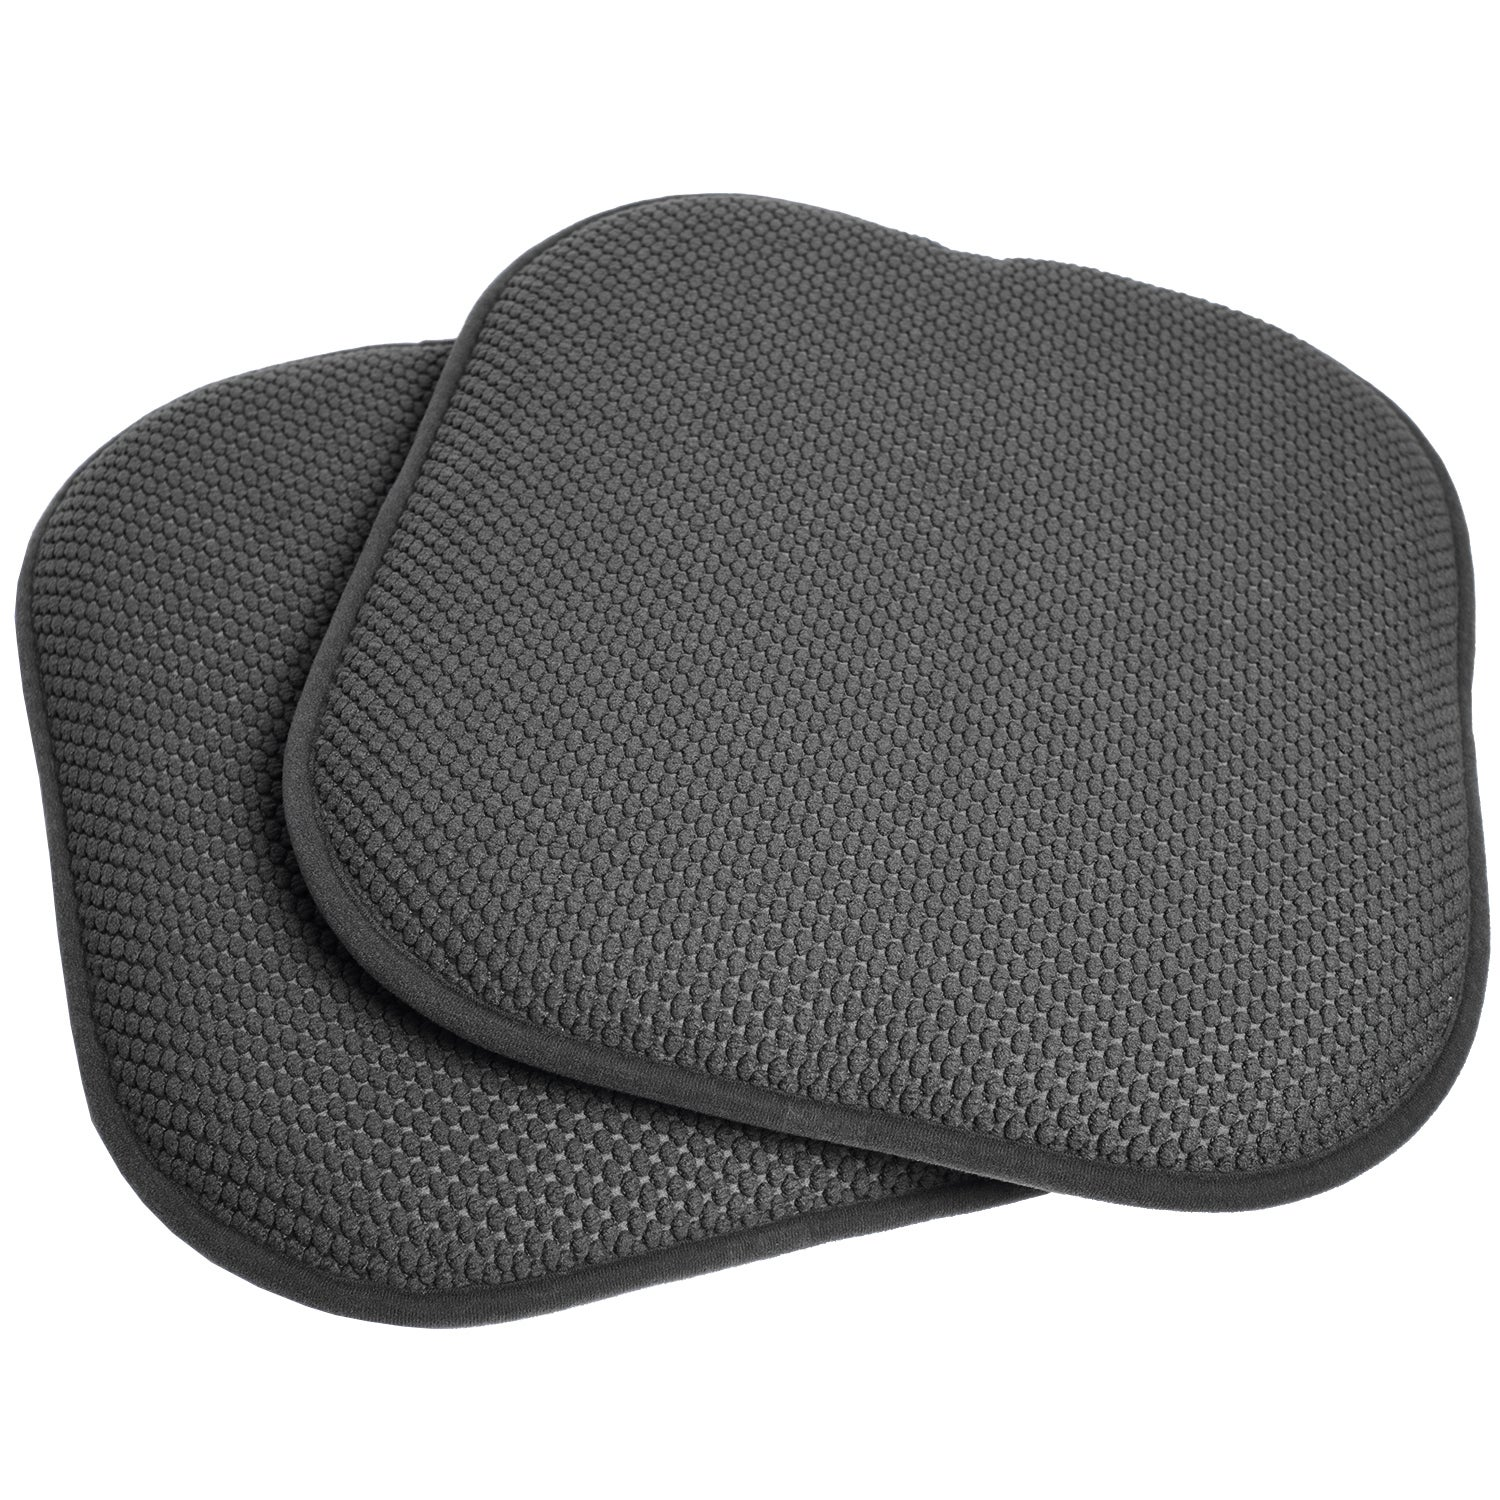 16x16 Memory Foam Chair Pad/Seat Cushion With Non Slip Backing (2 Or 4  Pack)   Free Shipping On Orders Over $45   Overstock.com   17409230